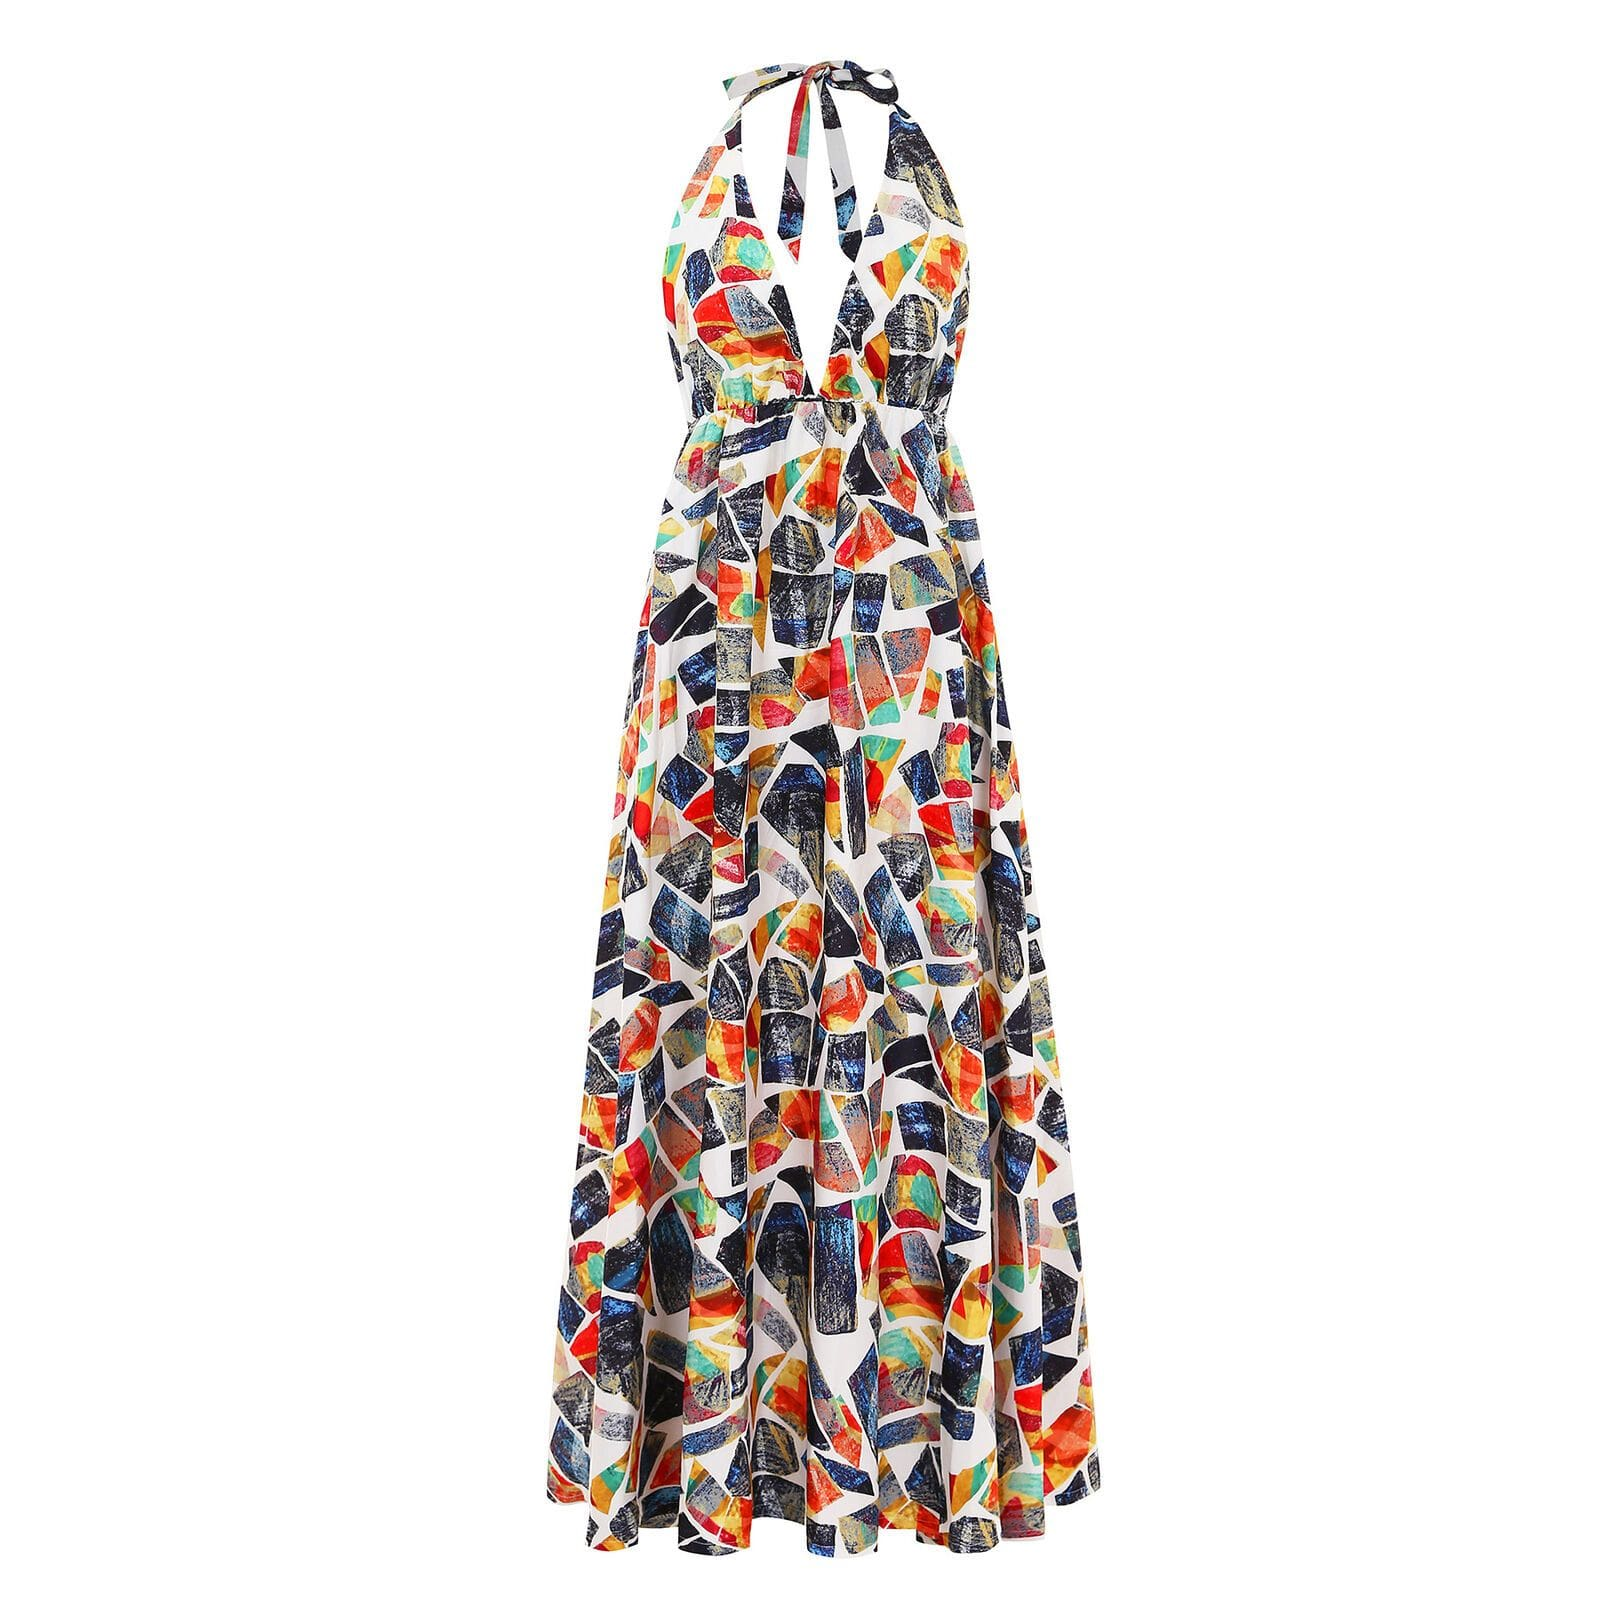 The Best Boho Women Sleeveless Halter V Neck Floral Sundress Ladies Summer Beach Holiday Strappy Backless Maxi Dress Online - Source Silk